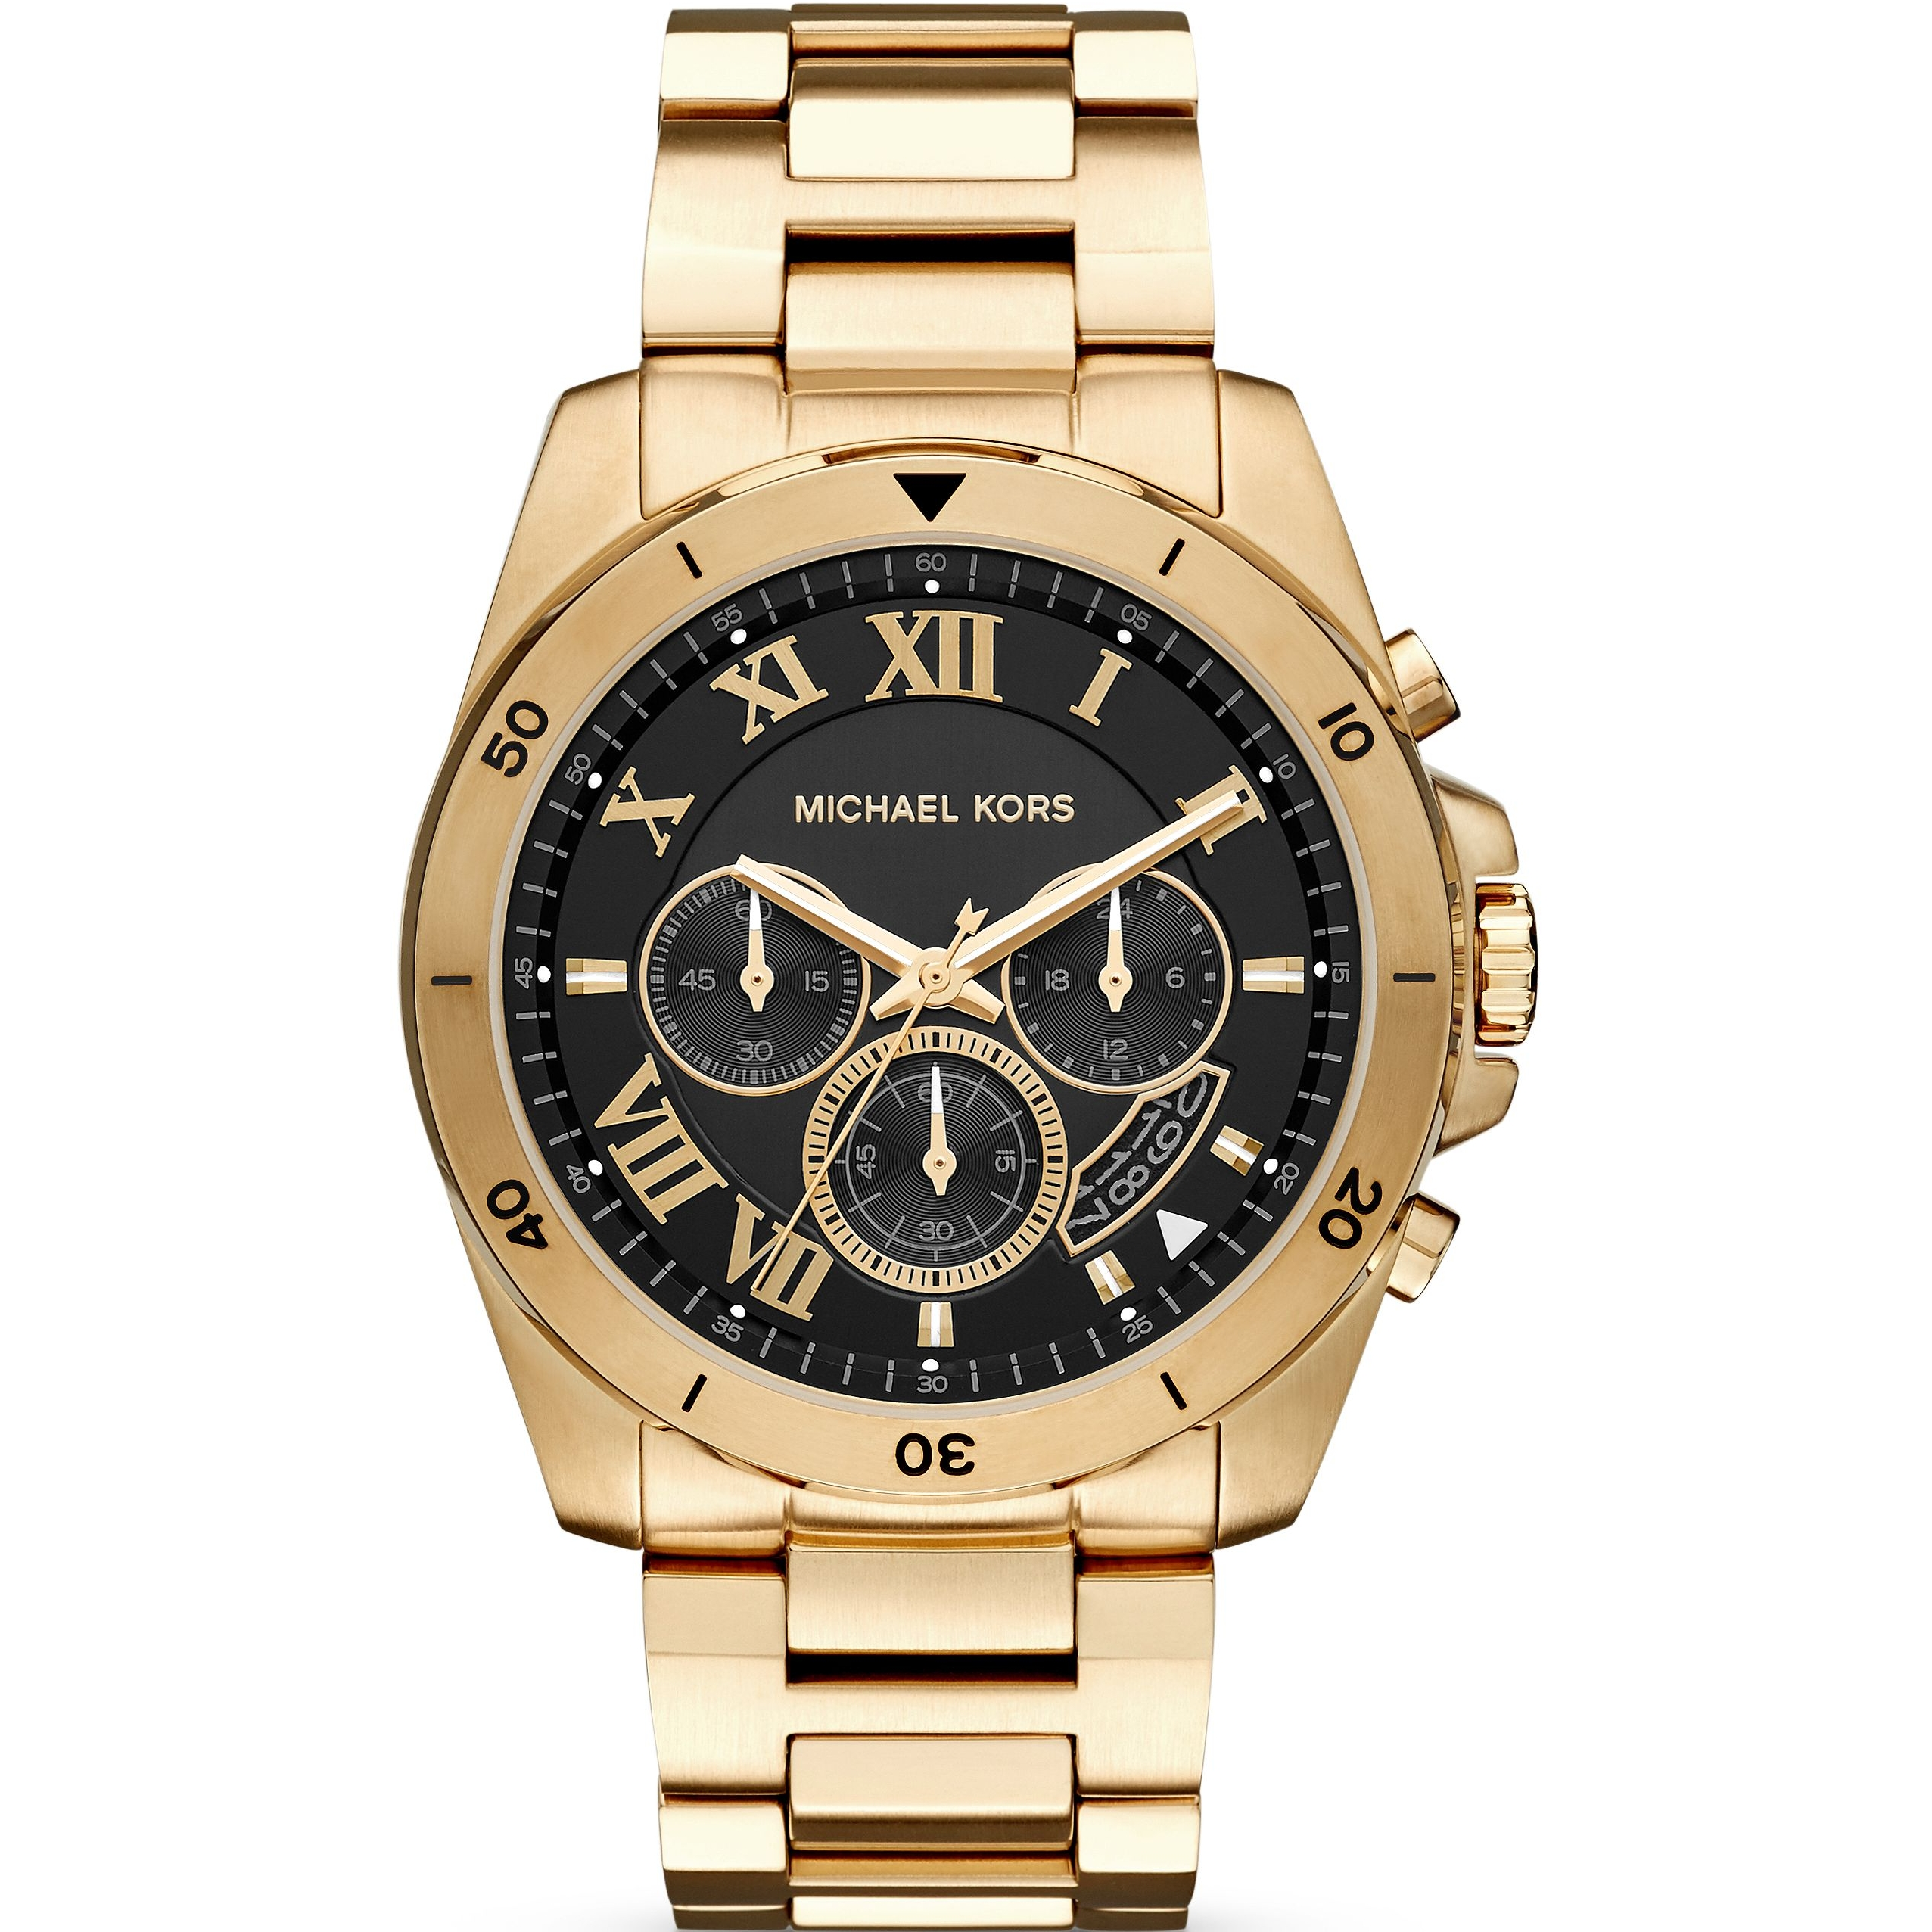 51d50d90b0ed Gents Michael Kors Brecken Chronograph Watch (MK8481)